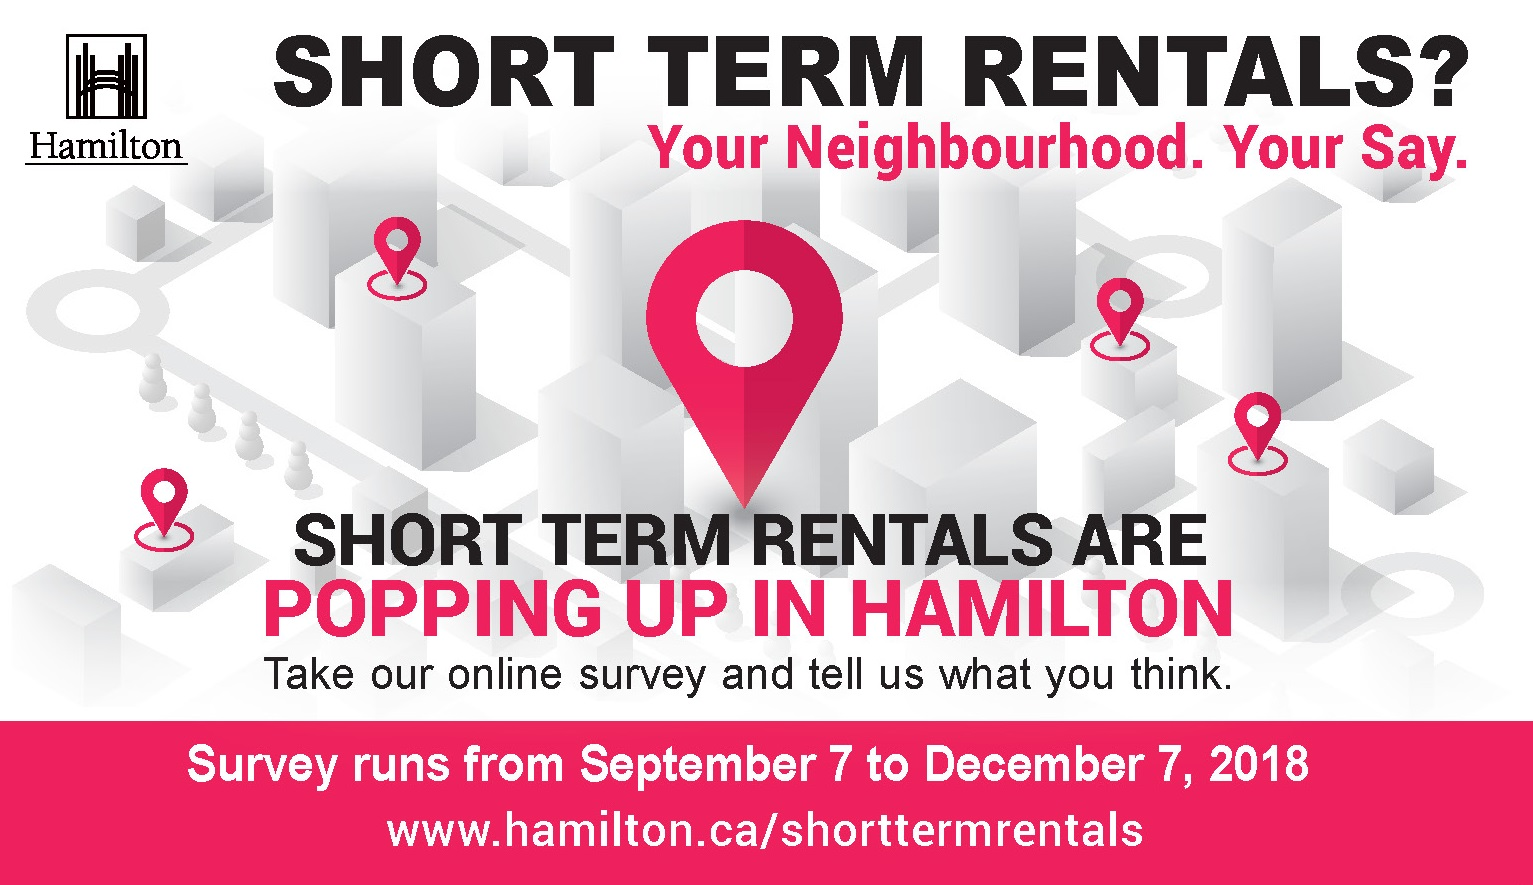 Short_Term_Rental_5x3_Postcard_For_Print_Page_1.jpg